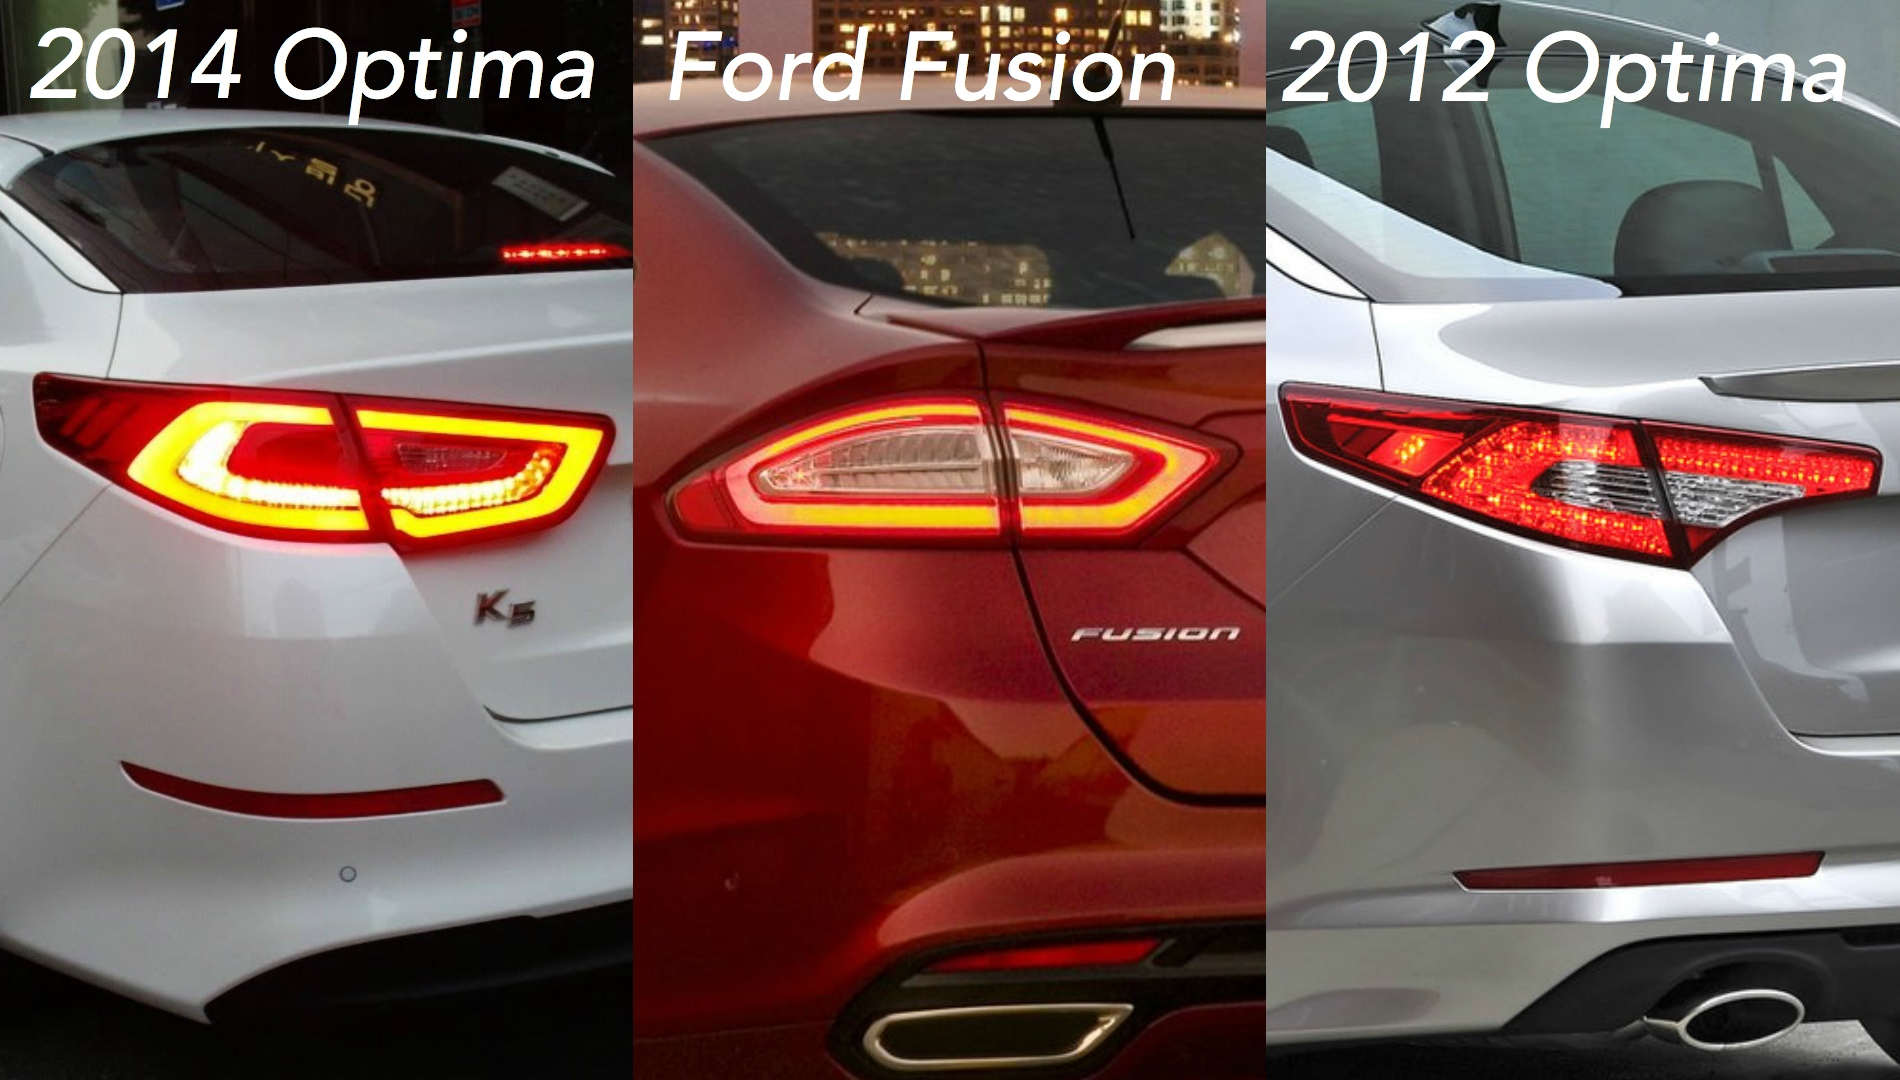 Ford Fusion 2013 >> Did Kia Copy the Ford Fusion's Taillight Design on the 2014 Optima? - autoevolution